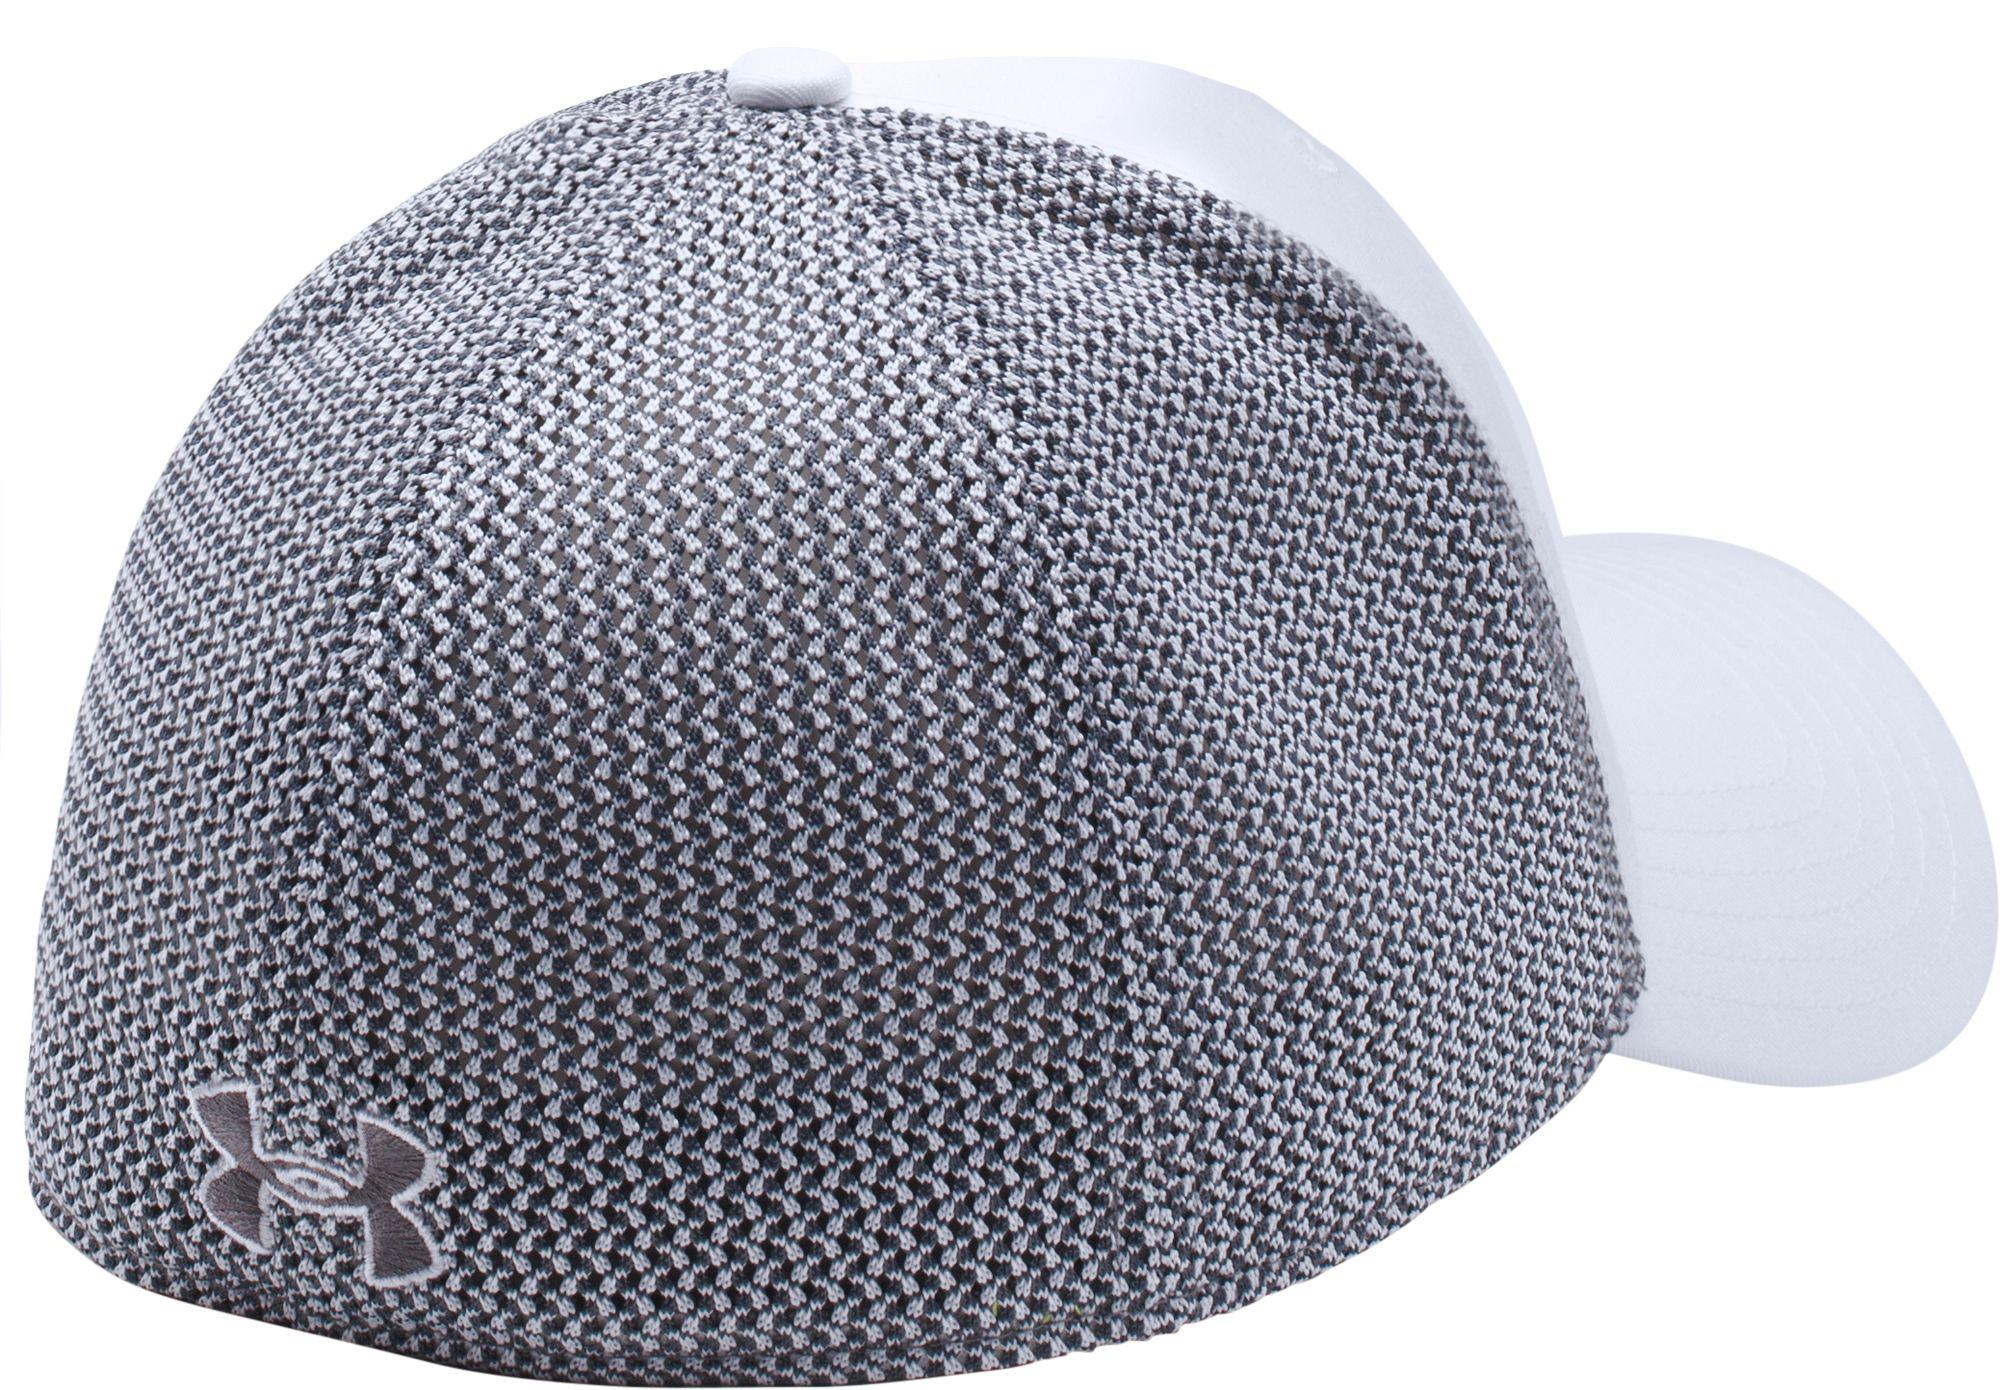 544e08a85c6 Lyst - Under Armour Twist Low Crown Hat in White for Men